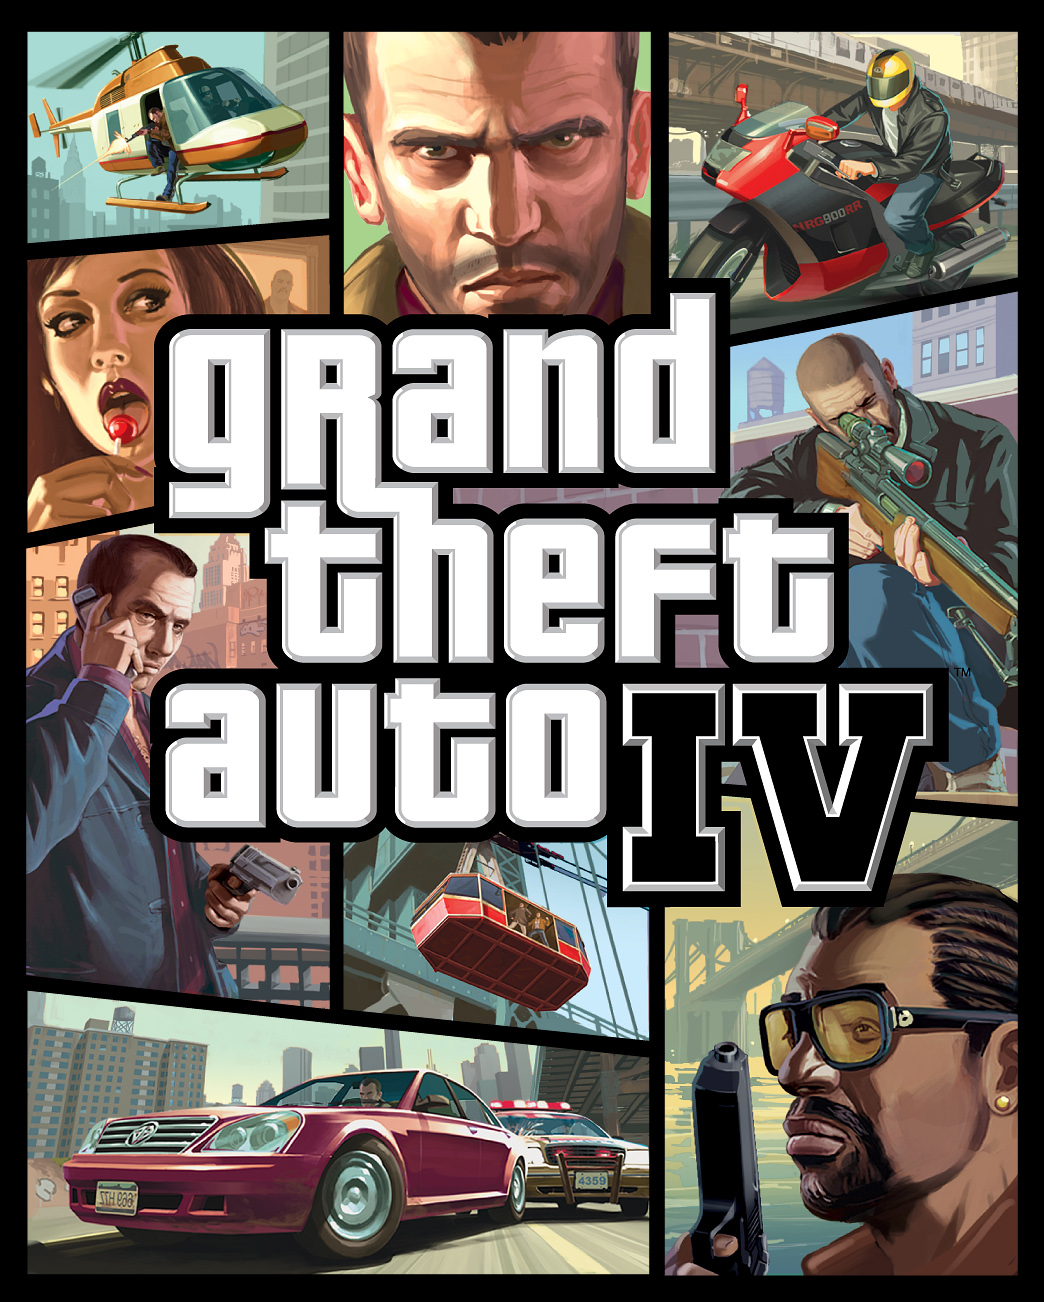 grand theft auto essay Search this site: home  publications  non-fiction  neo-eocene (essay)  grand  theft auto, vancouver riots and the deficit of the real (article) green corridor.